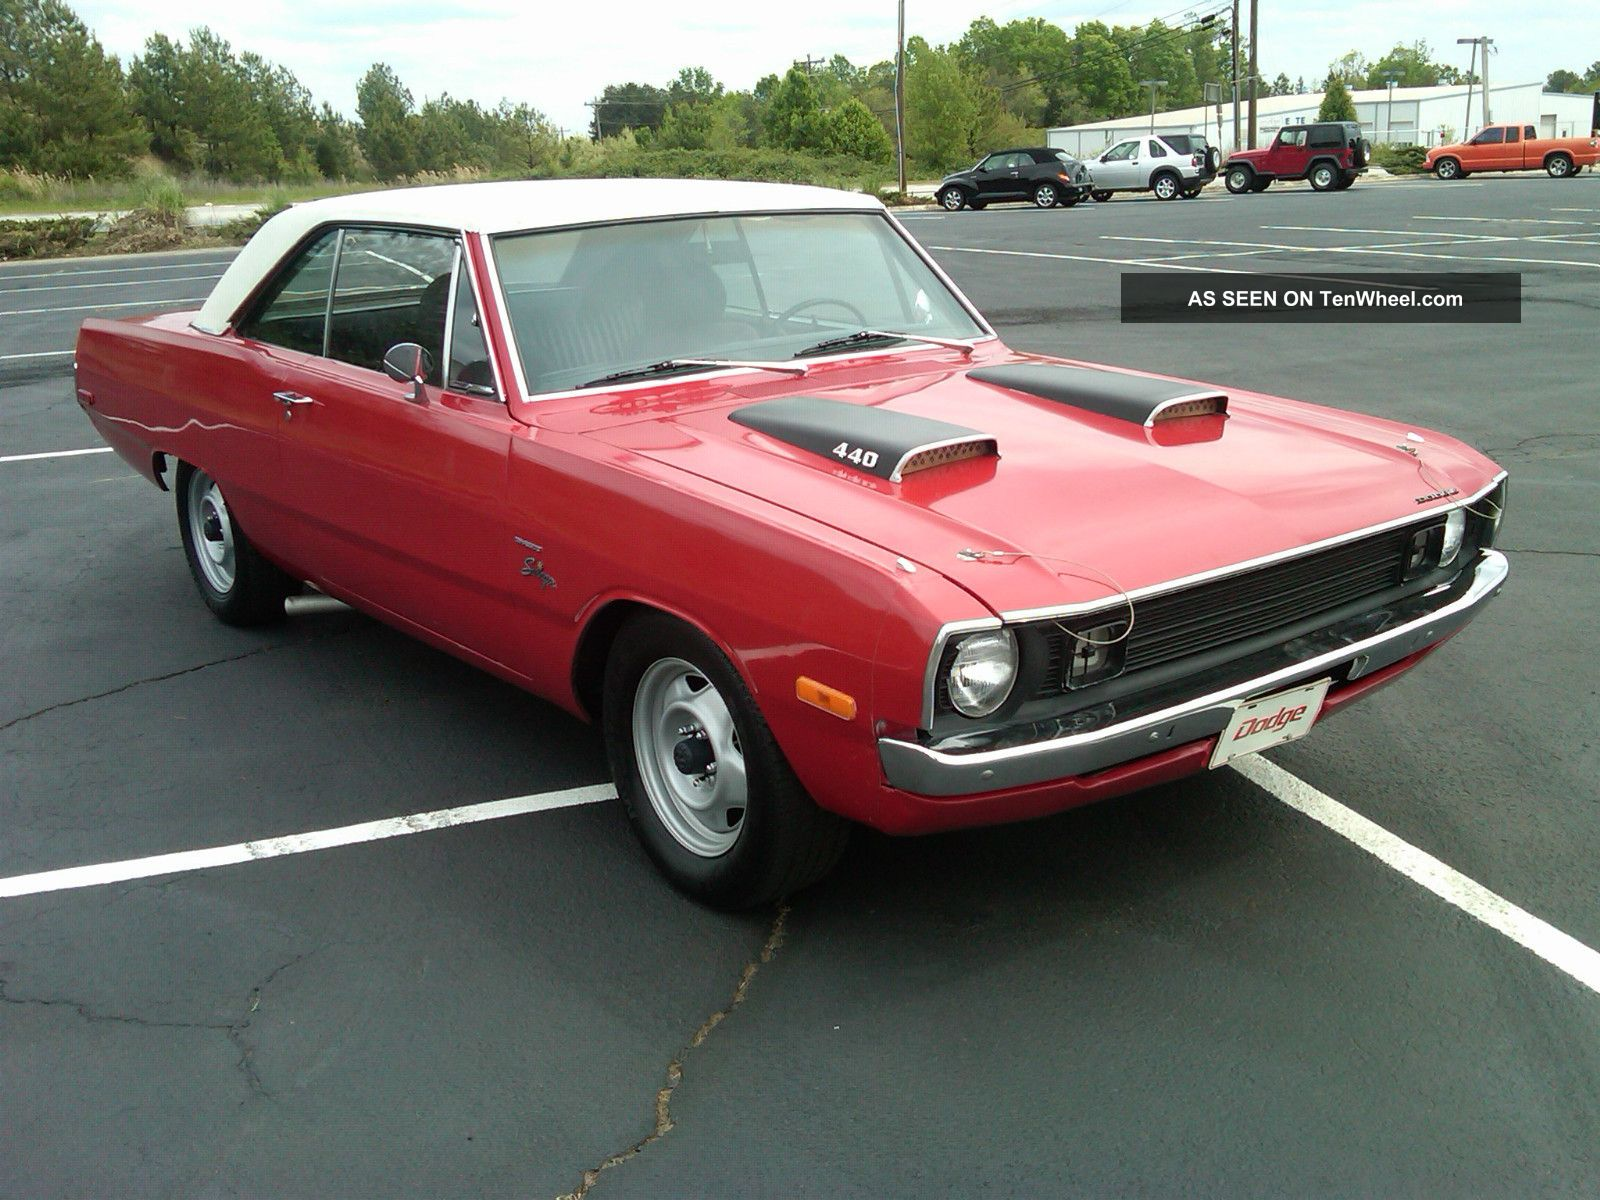 Dodge dart swinger page Dodge Dart Swinger for sale - Dodge Dart for sale in Boonton, New Jersey, United States